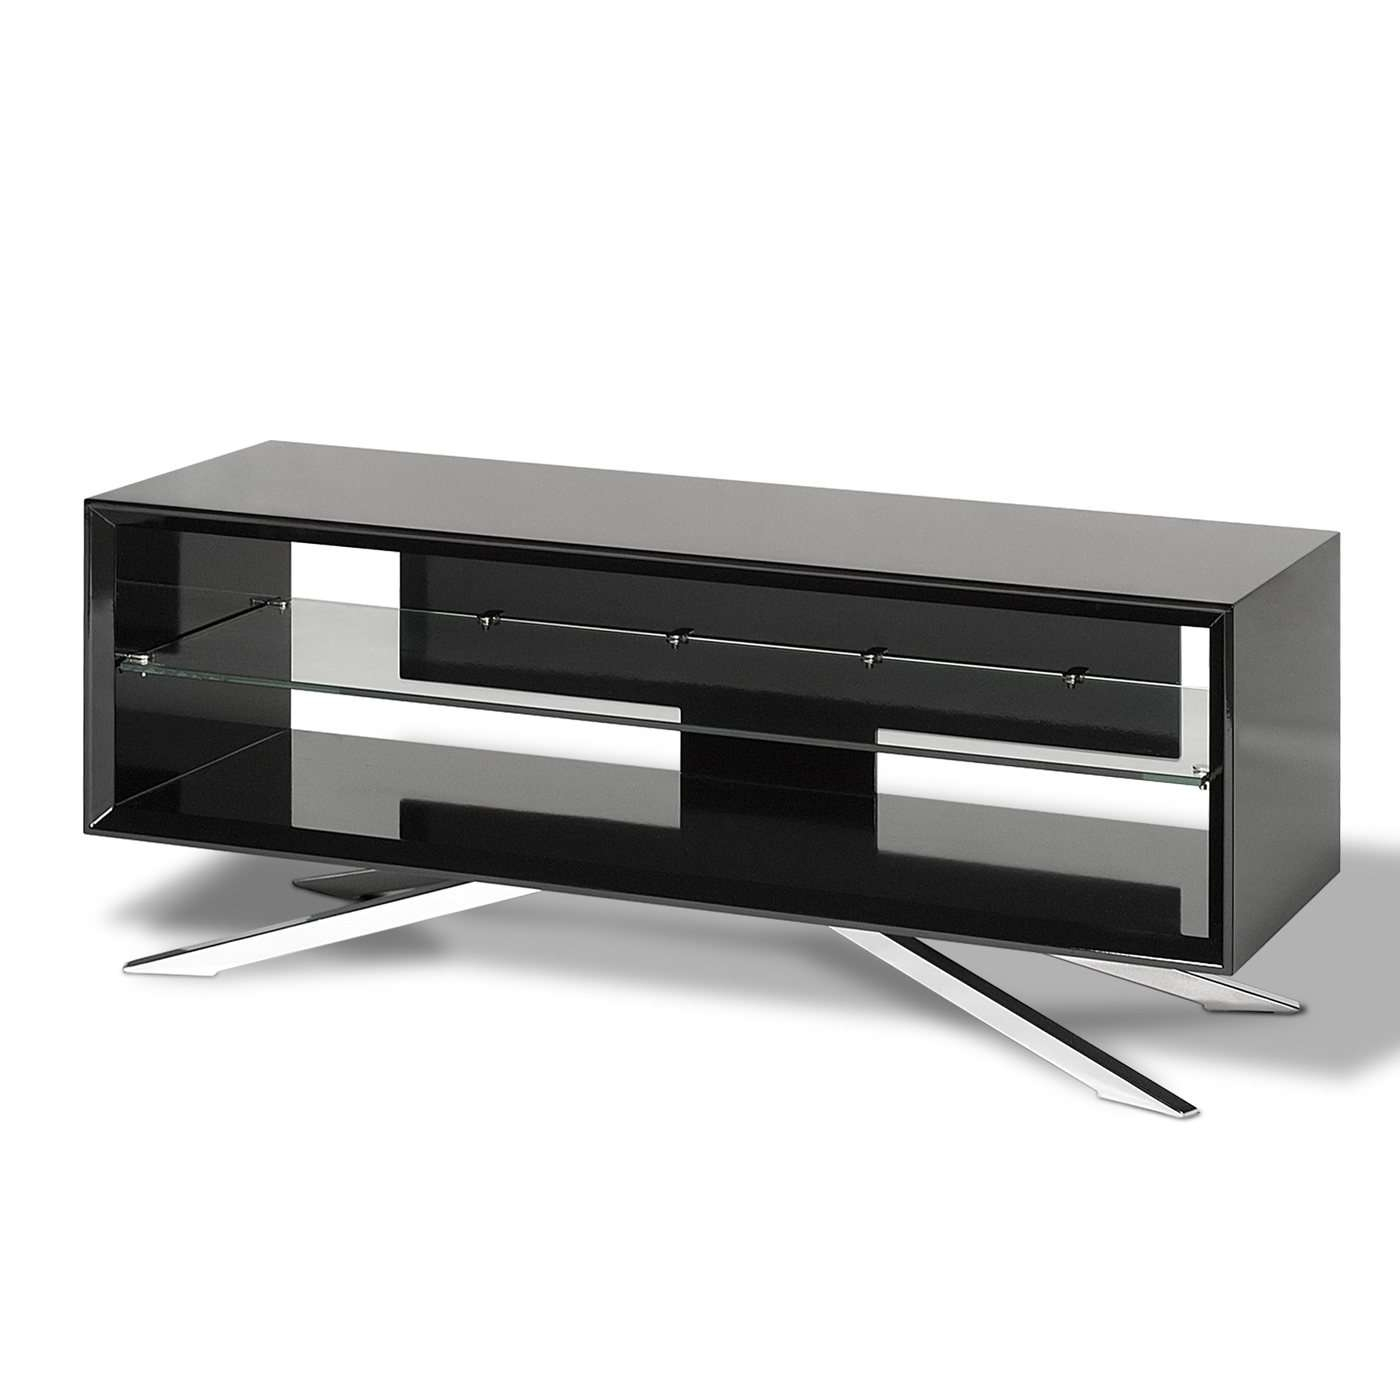 Tv : Techlink Aa Arena Tv Stand G Beautiful Techlink Arena Tv With Regard To Techlink Arena Tv Stands (View 10 of 15)